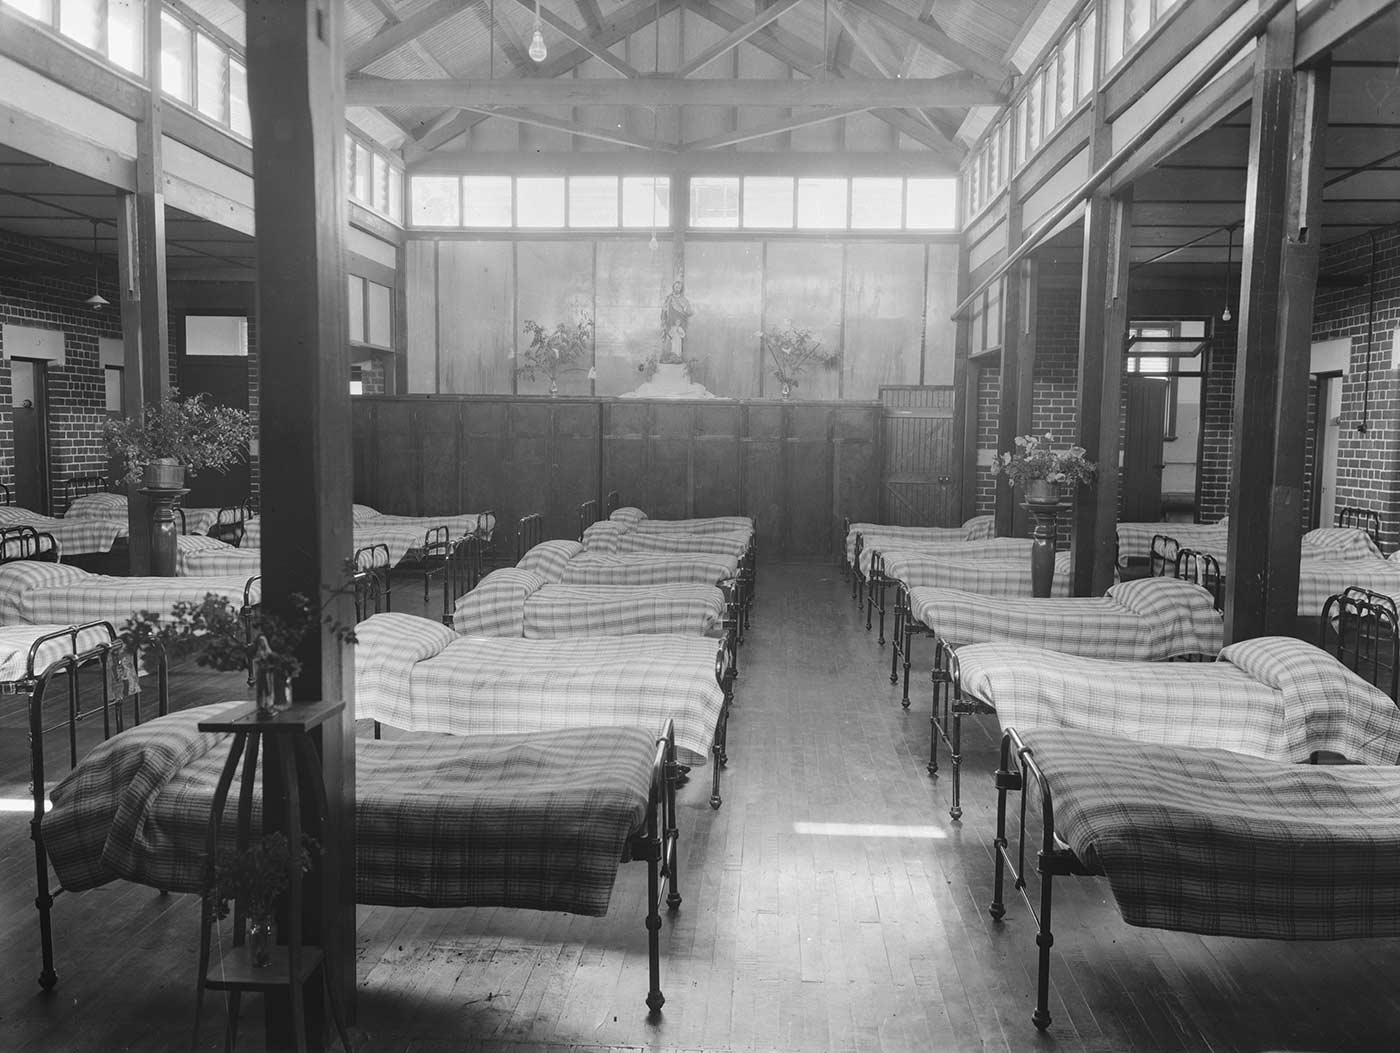 Black and white image showing a large room with high ceilings, filled with five rows of single, metal beds. Each is covered with a checked bedspread. Three small high tables stand in the room, with bases of flowers on top. Another two vases of flowers and  a religious statue sit on top of cupboards at the far end.